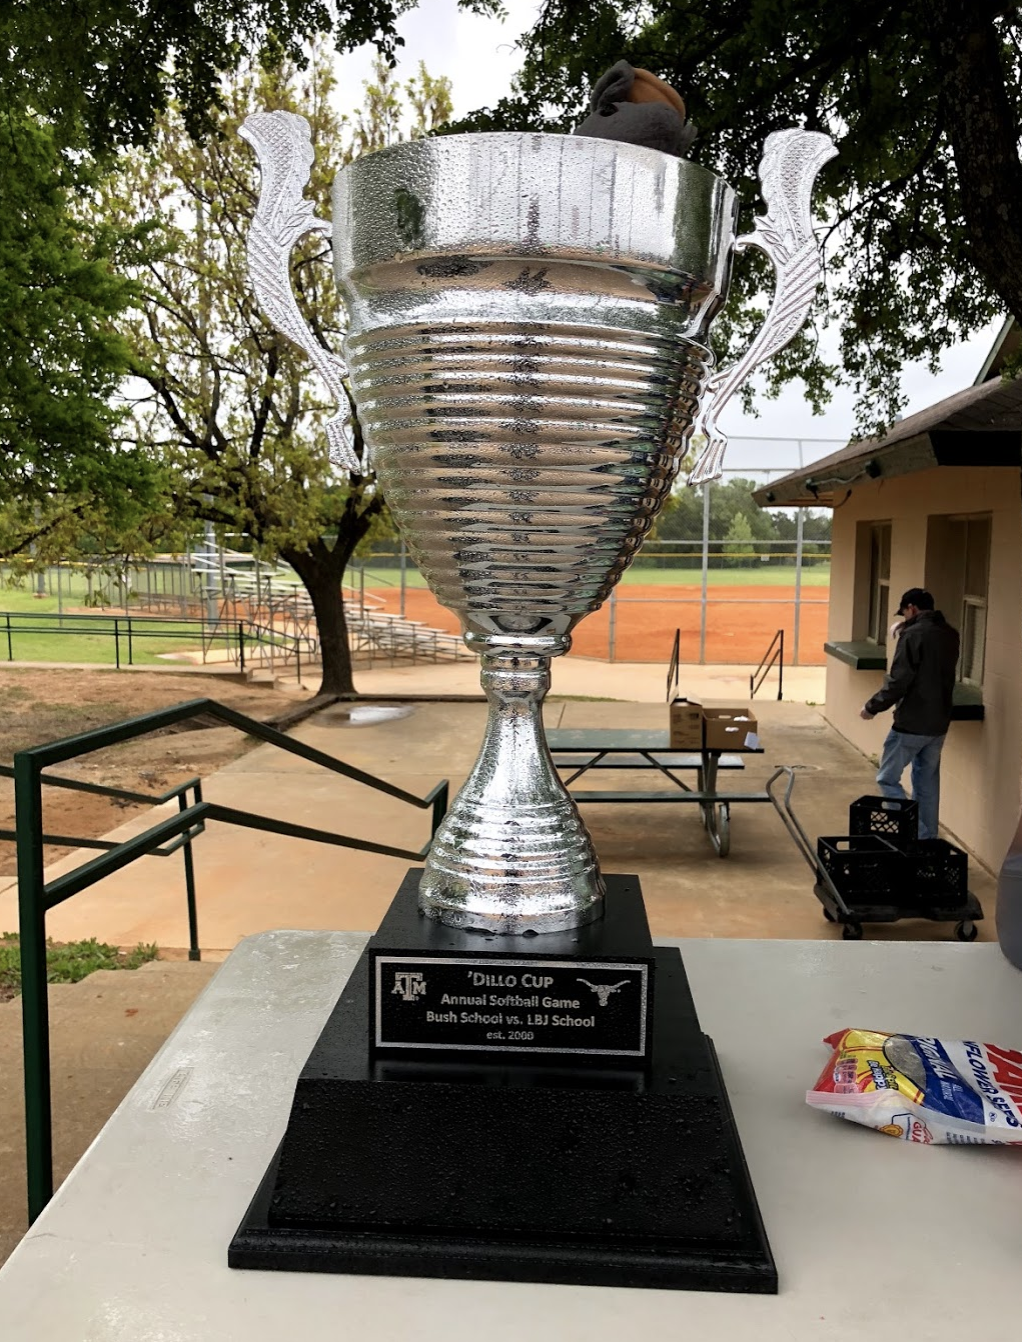 The 2018 Dillo Cup trophy, awarded to the winner of the annual LBJ-Bush softball game